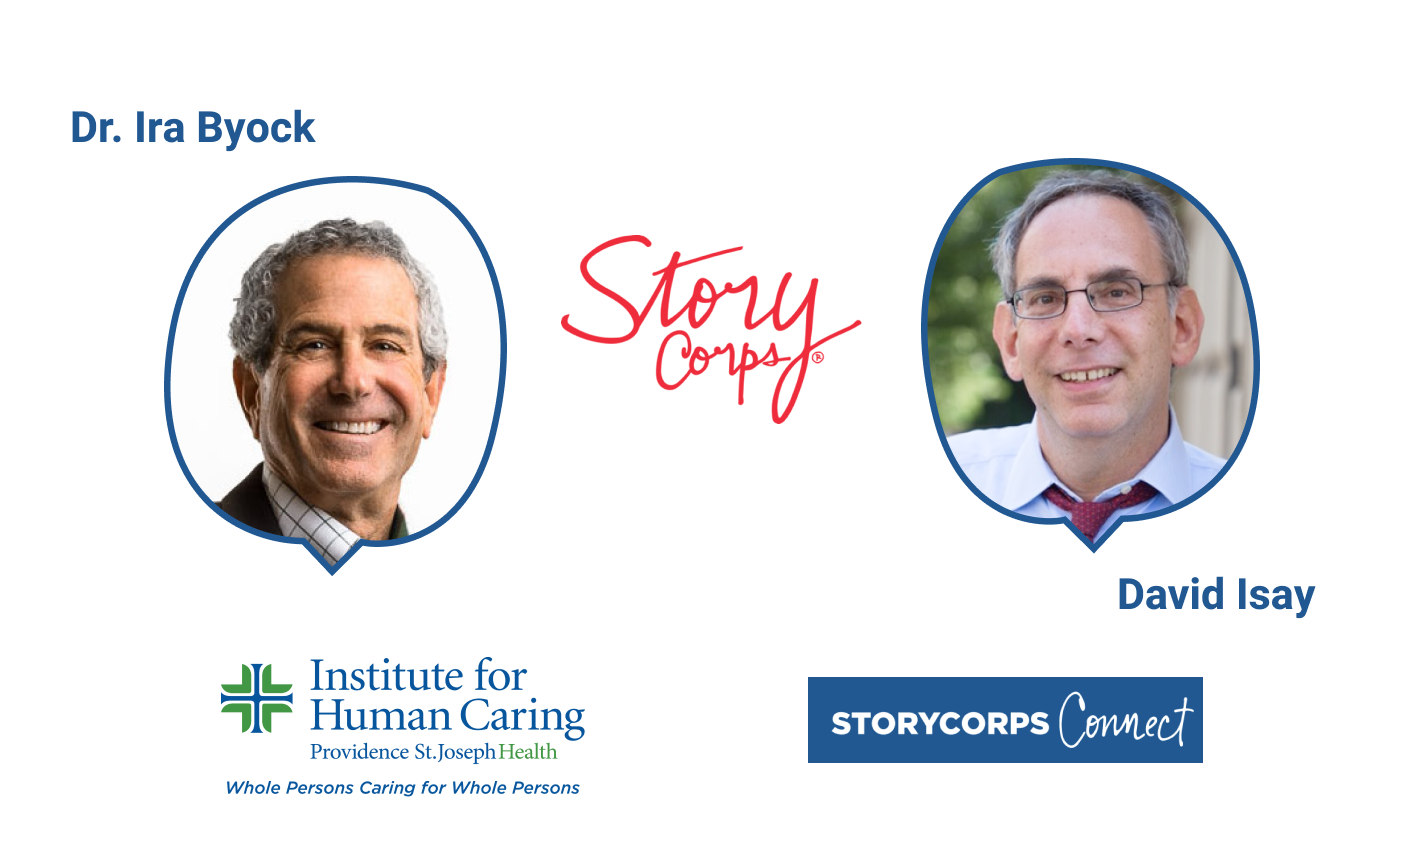 Fireside Chat with Dr. Ira Byock & StoryCorps' David Isay